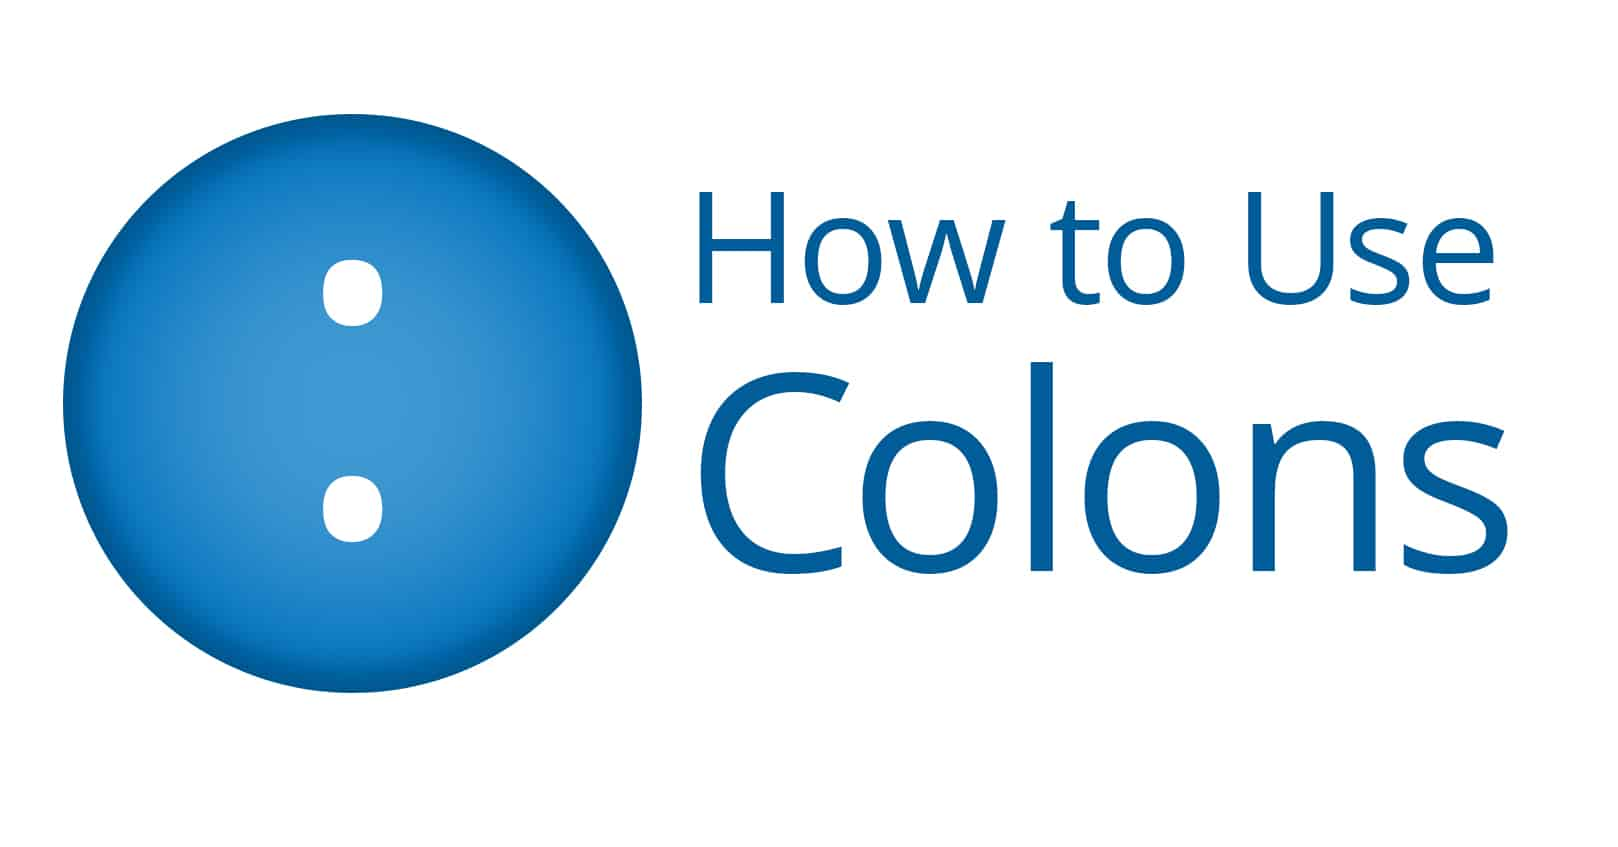 how to use colons